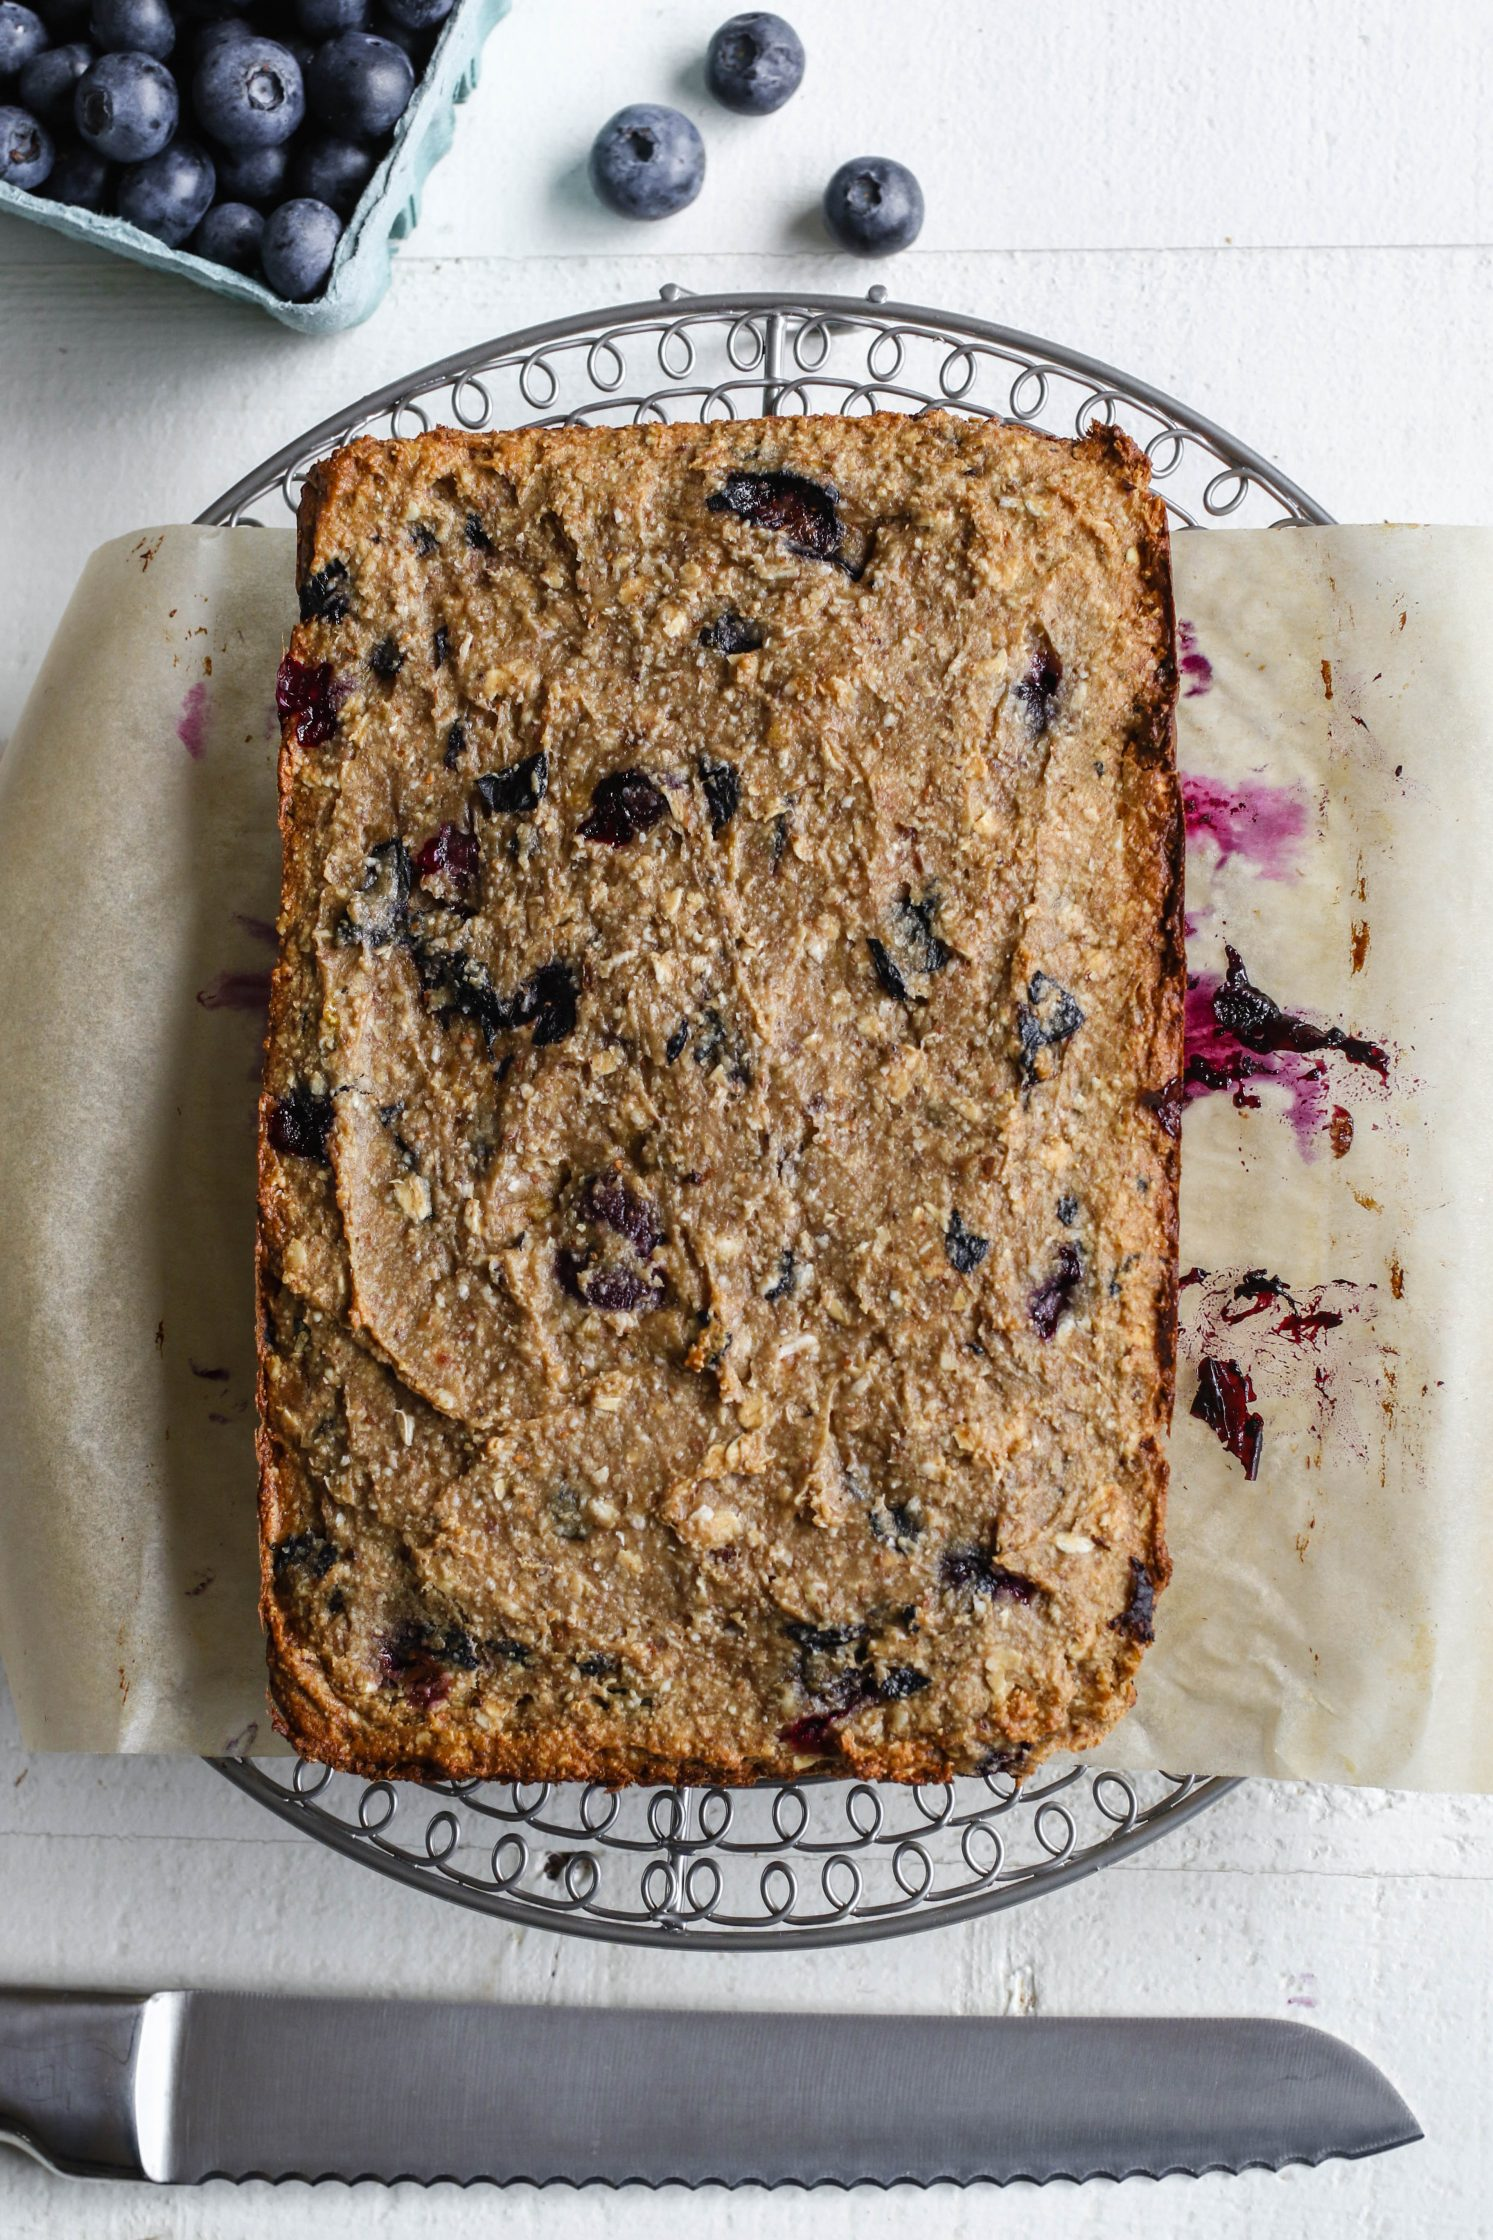 Blueberry Maple Baked Breakfast Bars baked